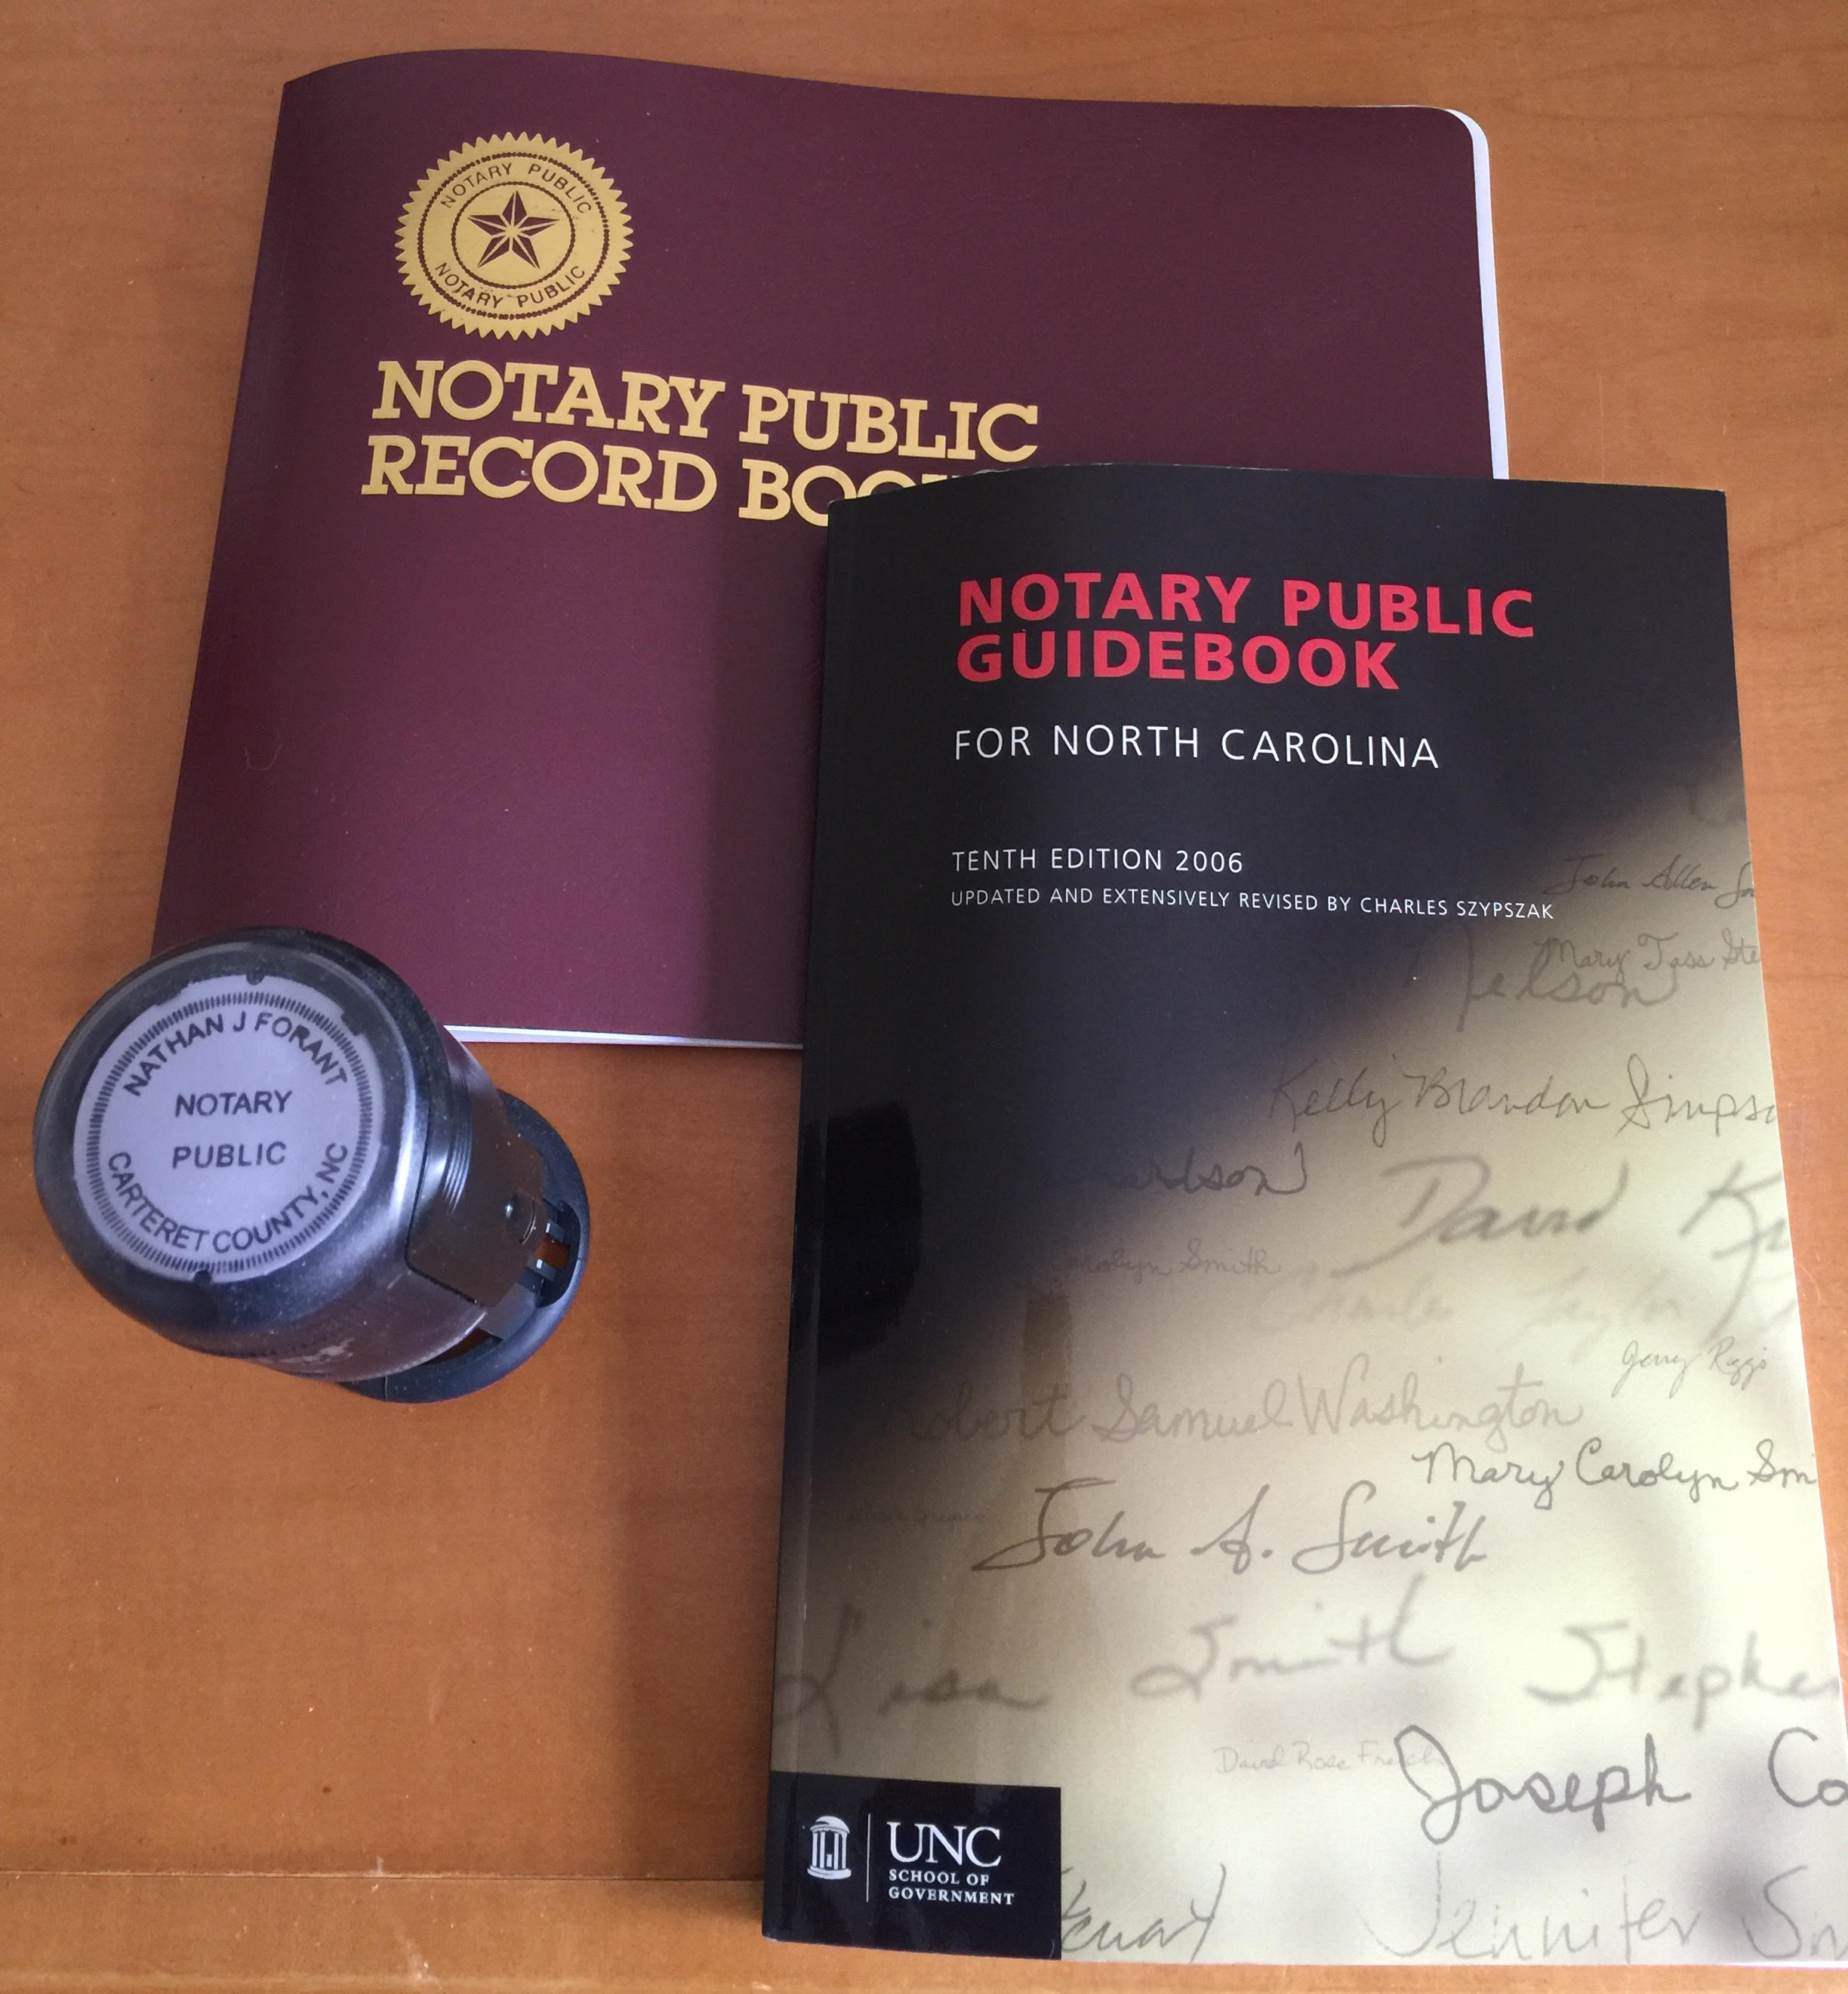 notary public services available at sobx tech sobx tech rh sobxtech com notary public guidebook for north carolina 11th edition notary public guidebook for north carolina 2016